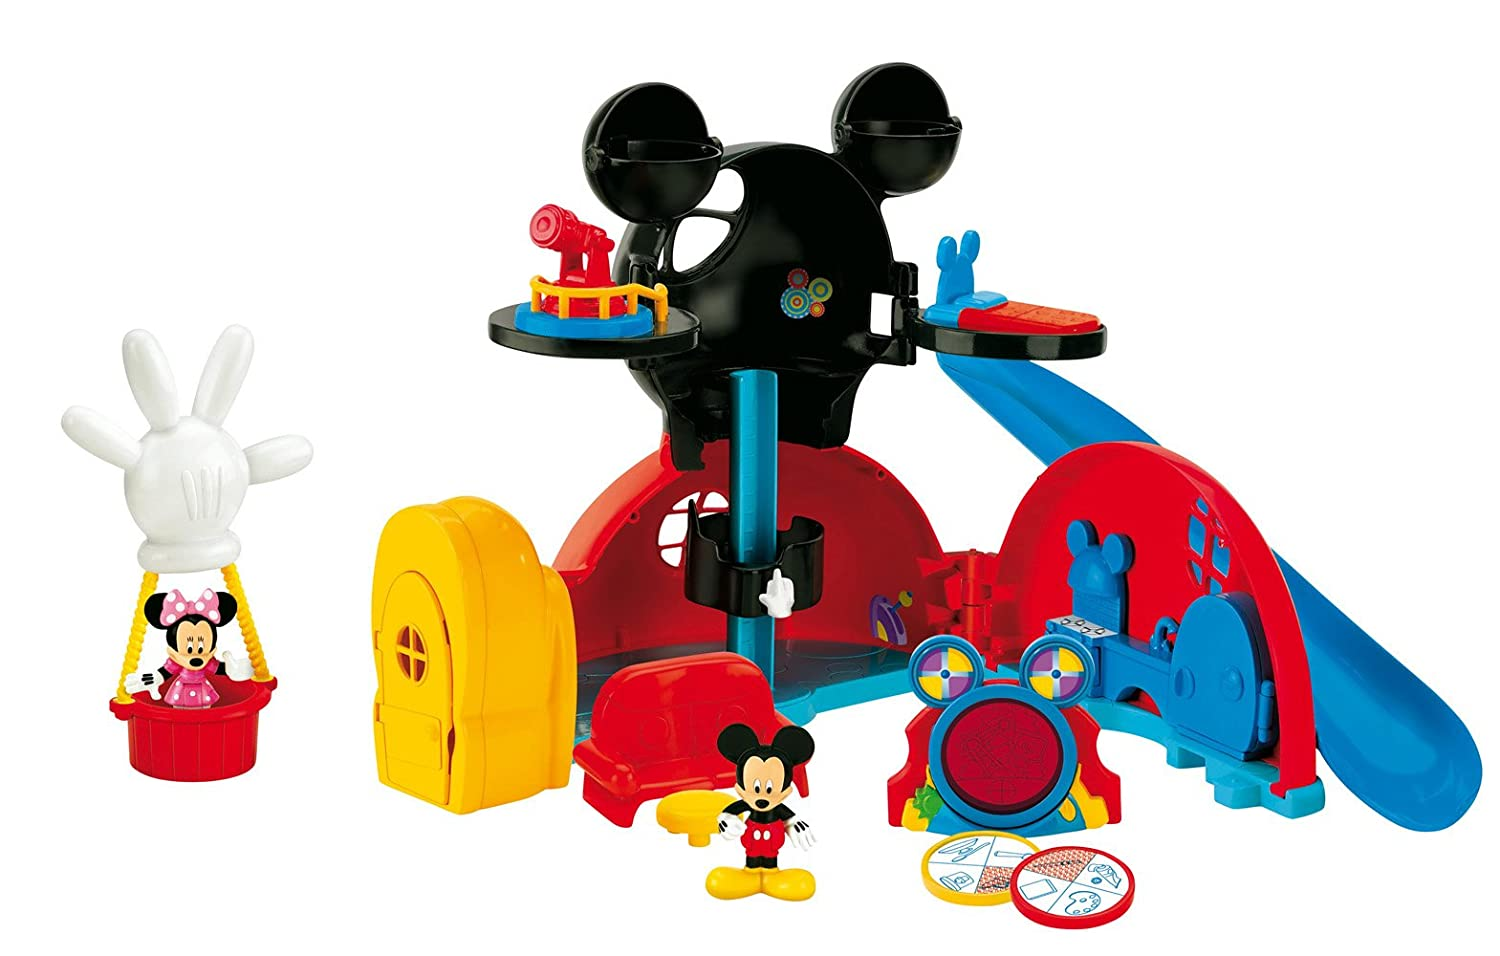 Mattel P Fisher Price Casa de Mickey Mouse